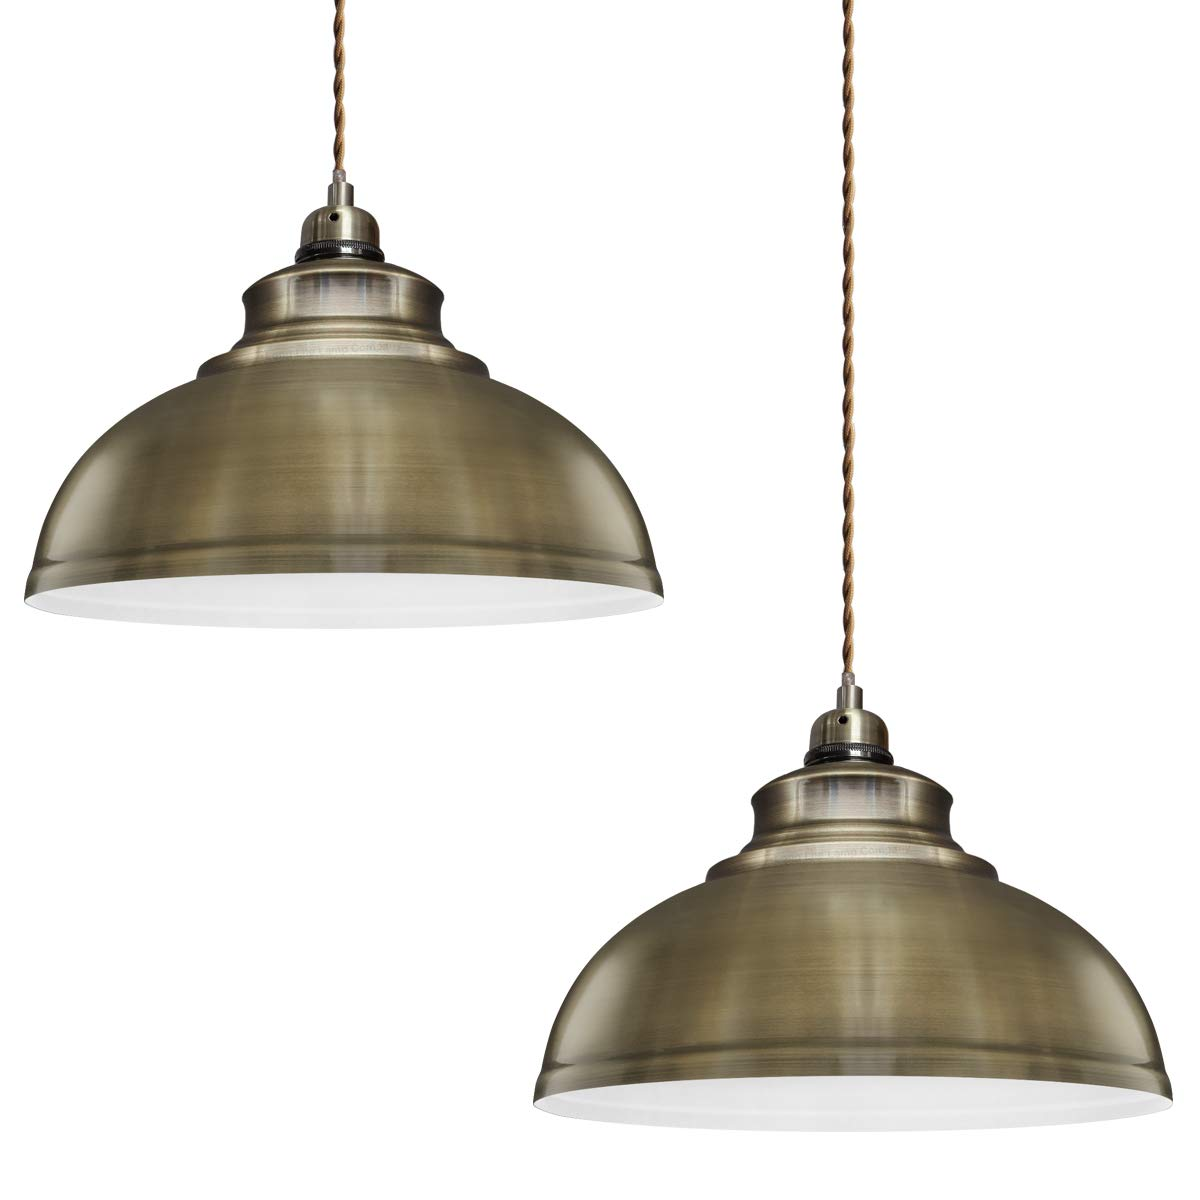 2 x Modern Vintage Antique Brass Pendant Light Shade Industrial Hanging Ceiling Light Ideal For Dining Room Bar Clubs & Restaurants Energy Light Bulbs VINBR2P